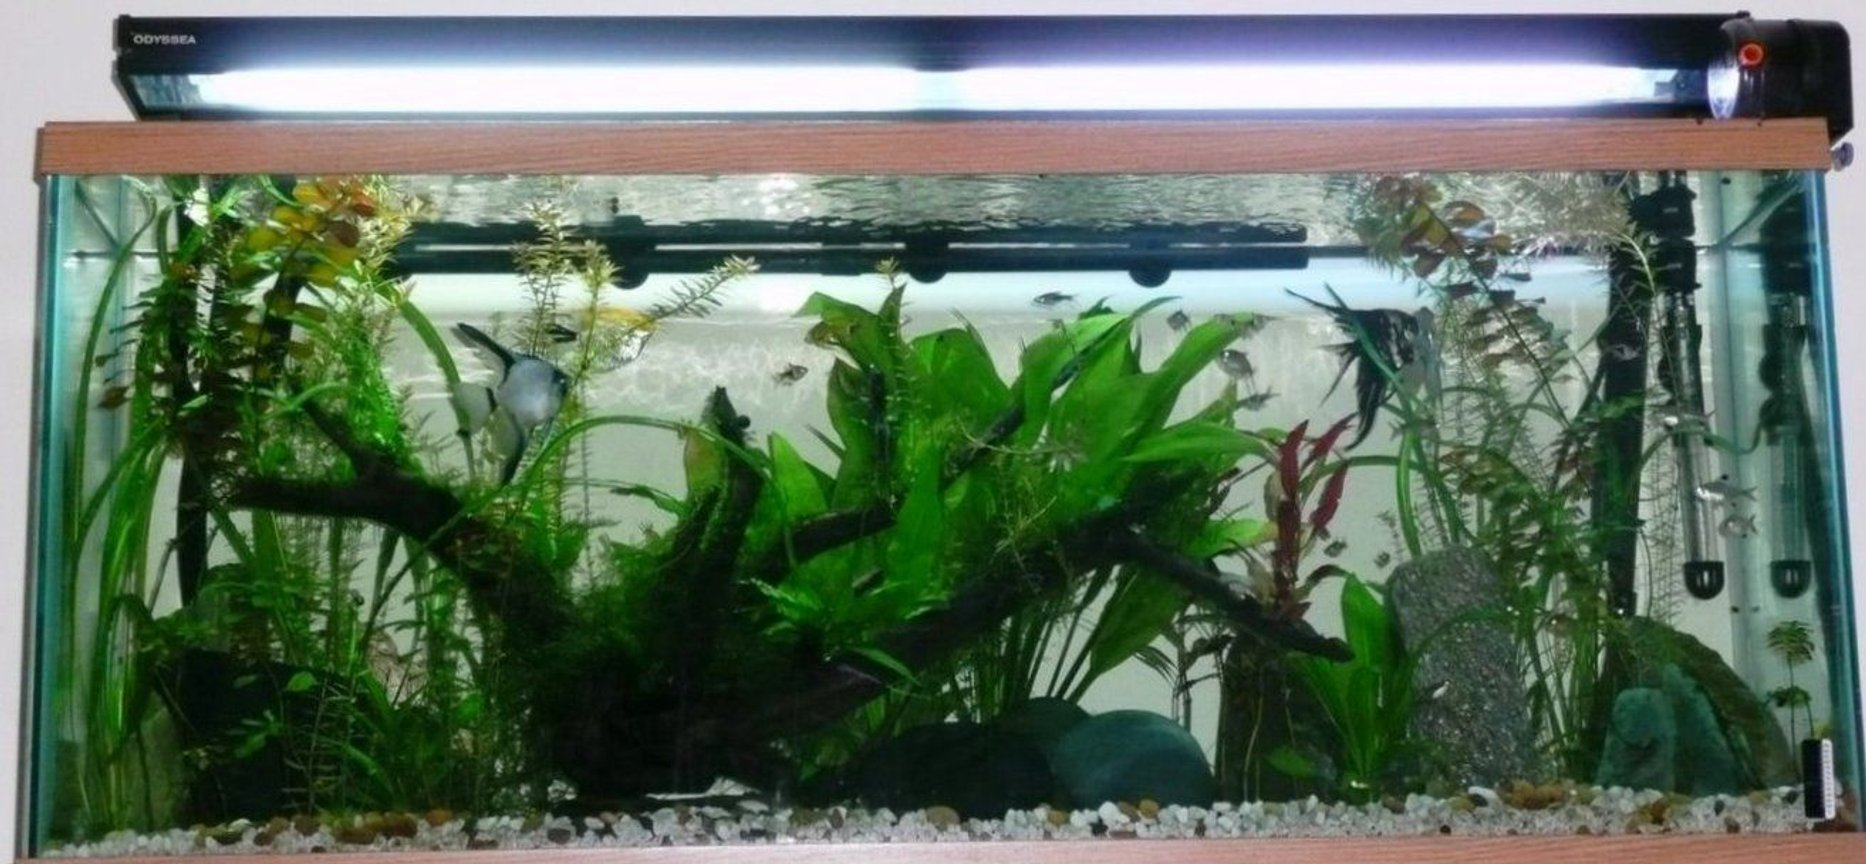 65 gallons planted tank (mostly live plants and fish) - Sort of an amazon based theme